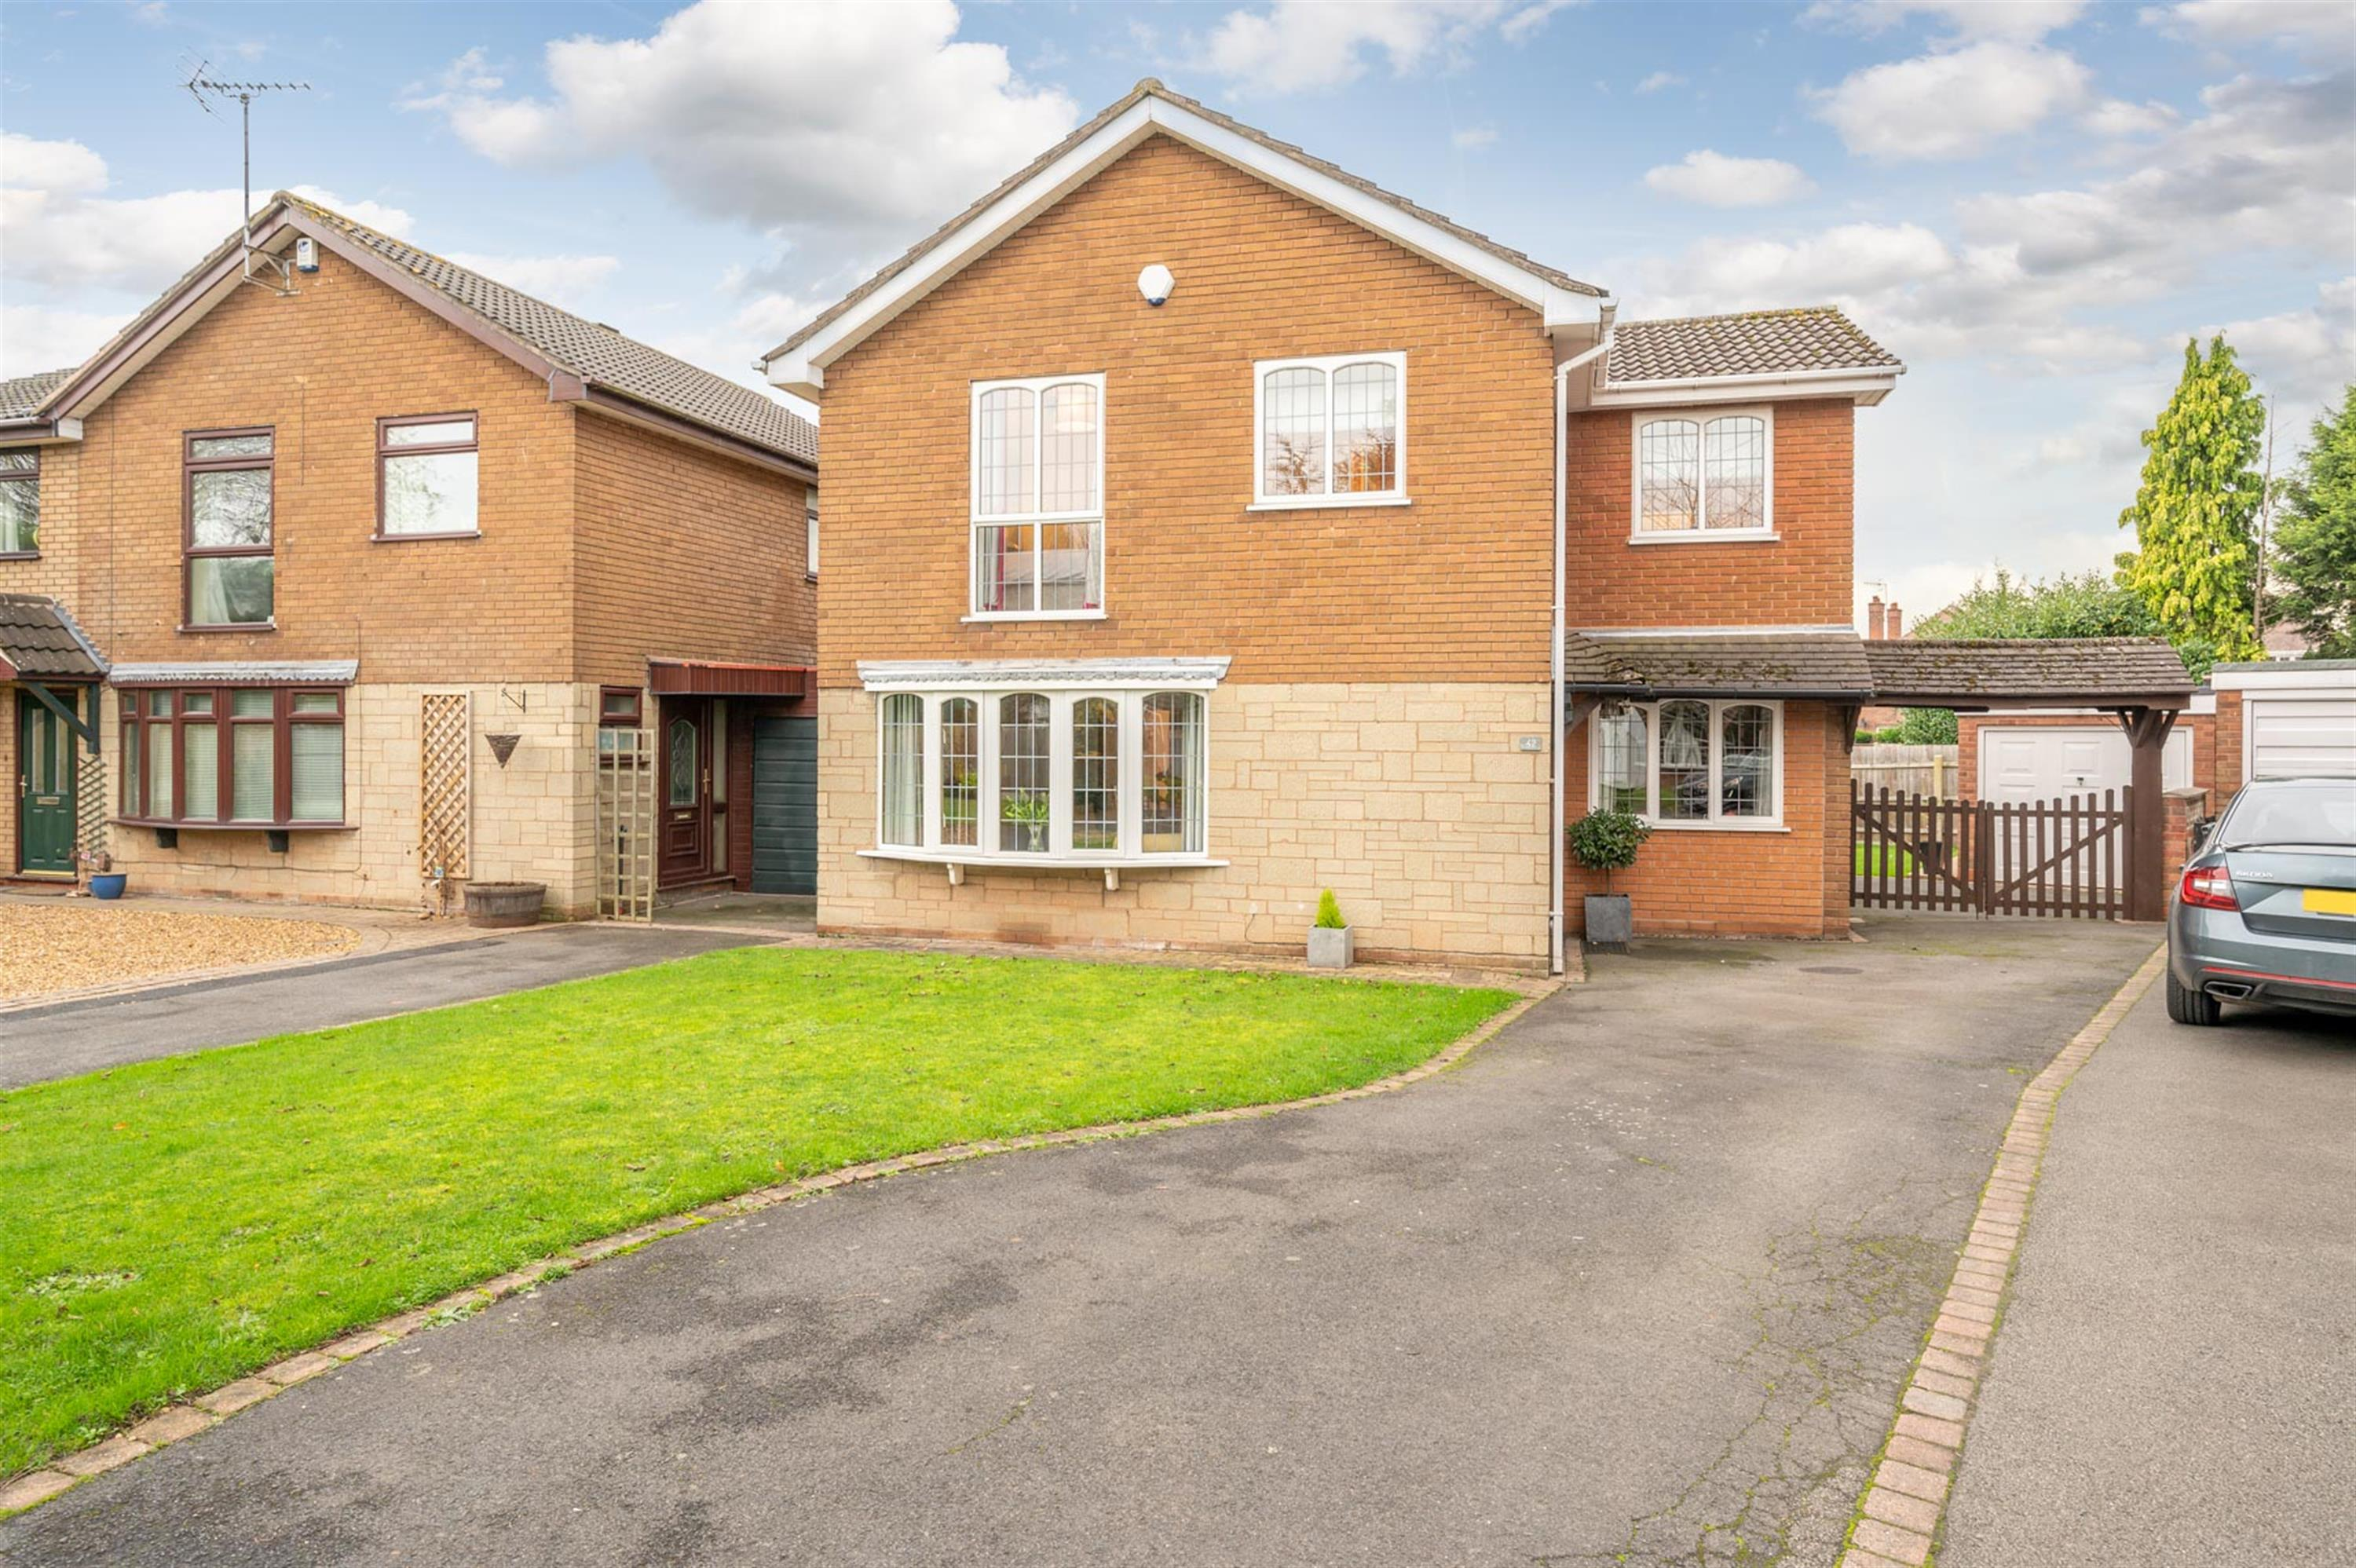 Lambert Court, Kingswinford, DY6 7RA